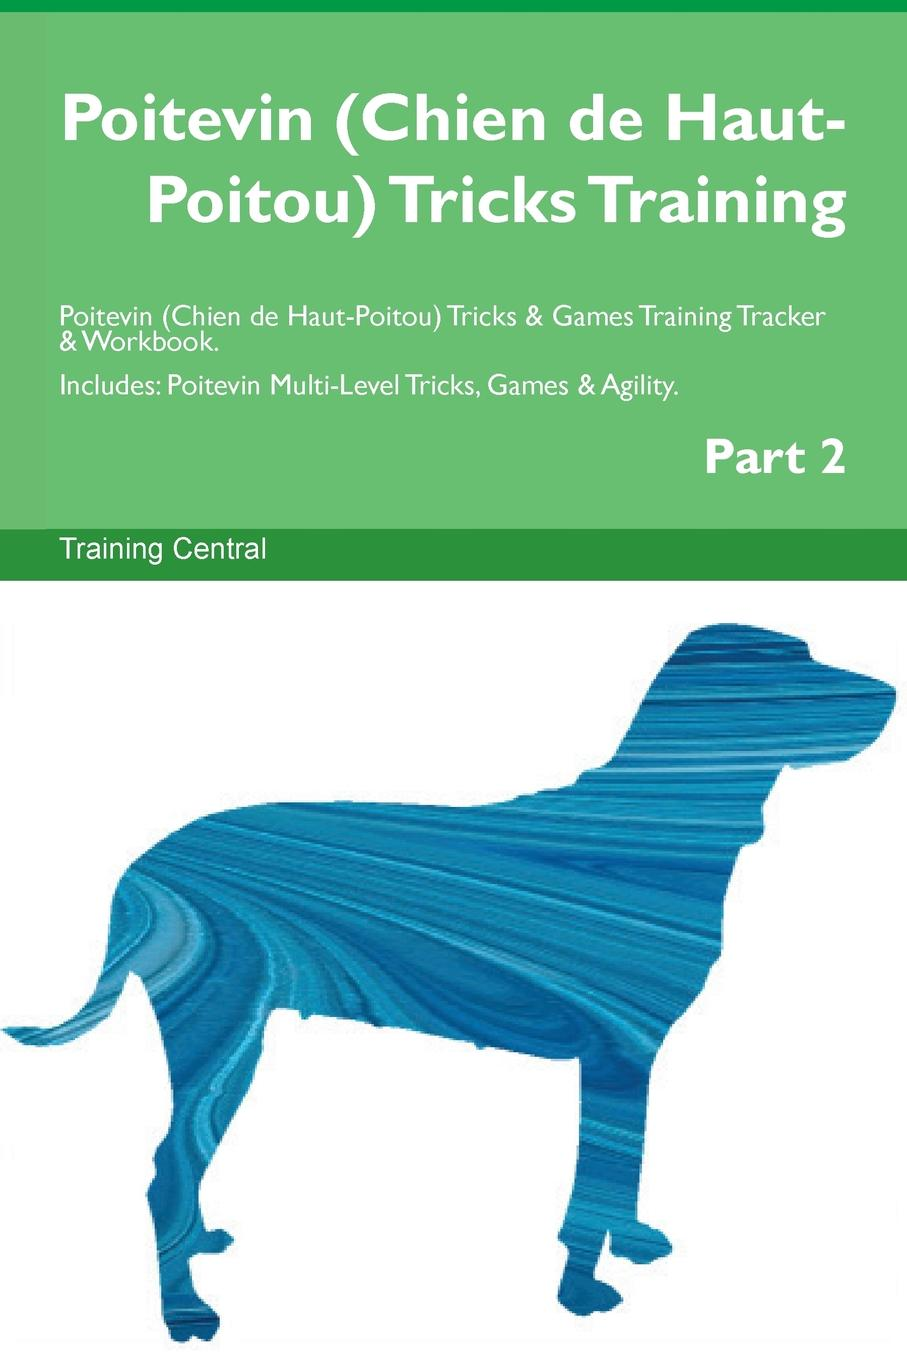 Training Central Poitevin (Chien de Haut-Poitou) Tricks Training Poitevin (Chien de Haut-Poitou) Tricks . Games Training Tracker . Workbook. Includes. Poitevin Multi-Level Tricks, Games . Agility. Part 2 this book loves you